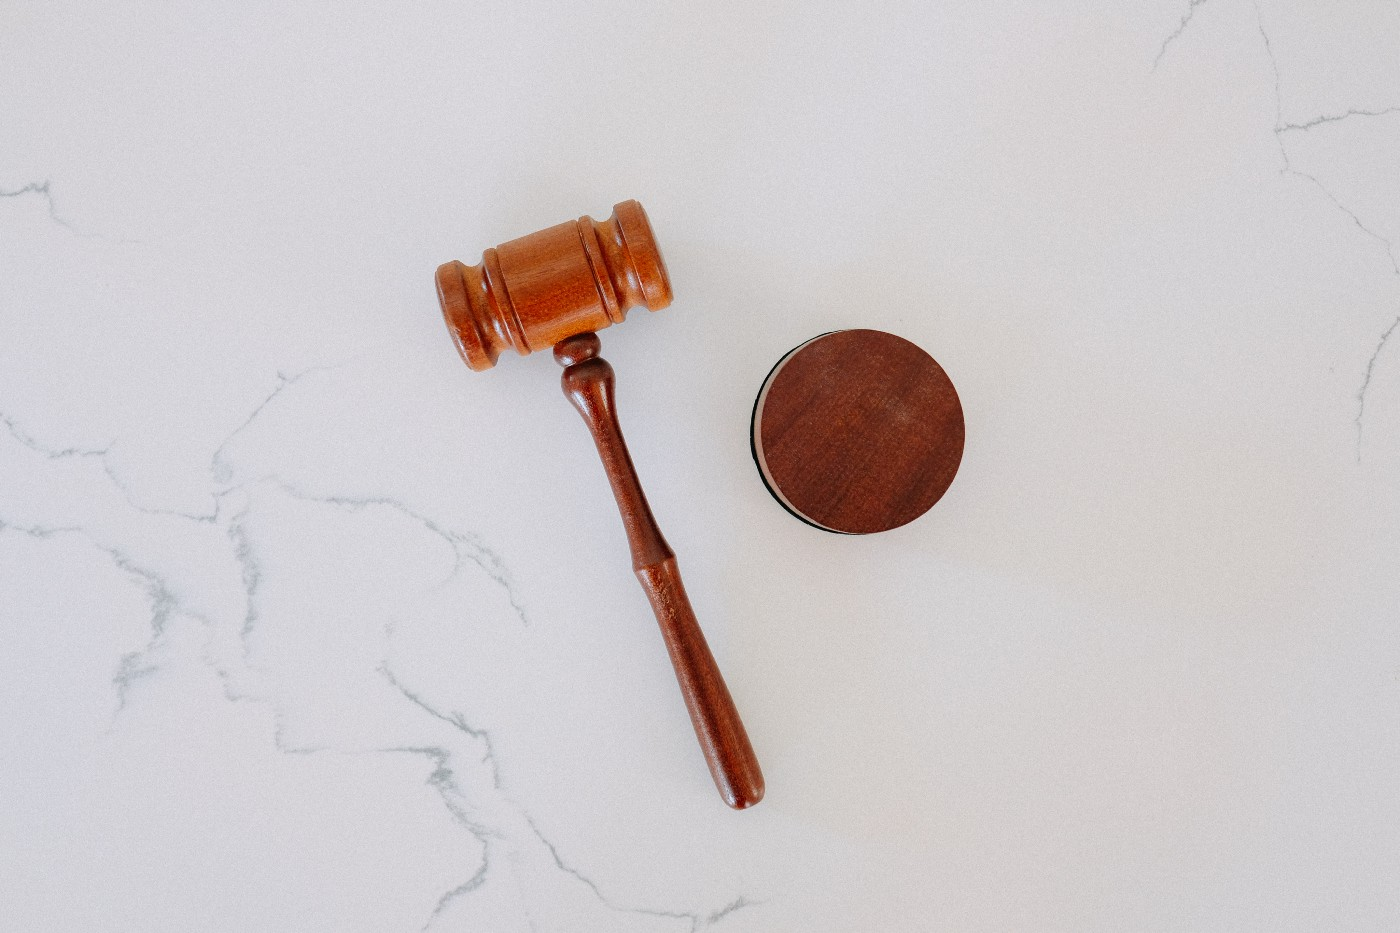 A judge's gavel.